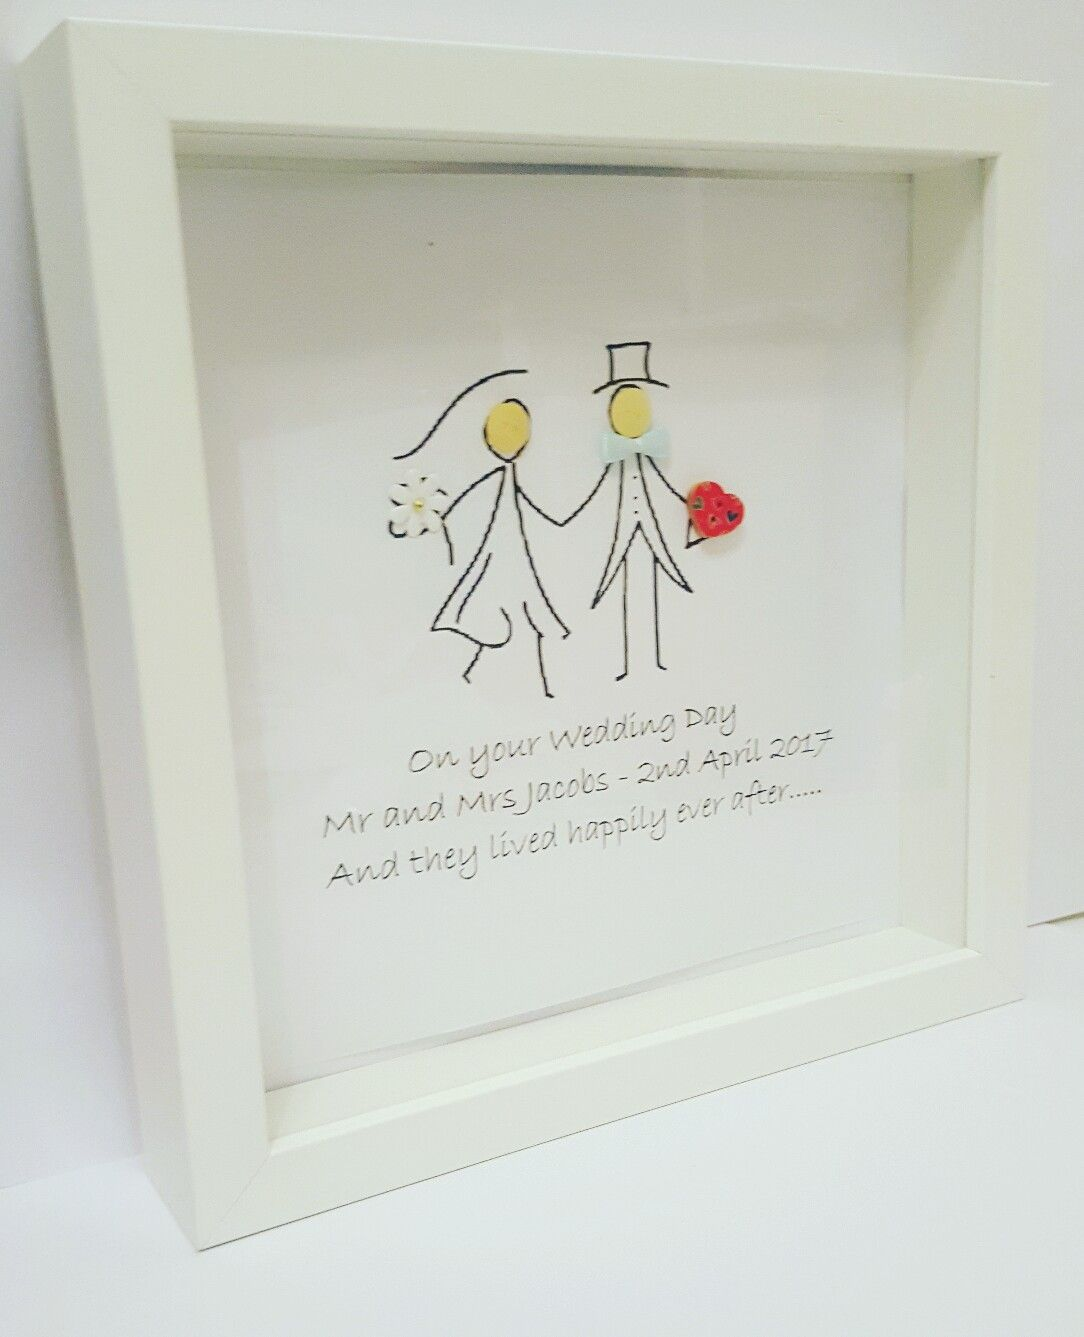 Pin by Ashleigh Edwards on Wedding gift idea frames | Pinterest ...